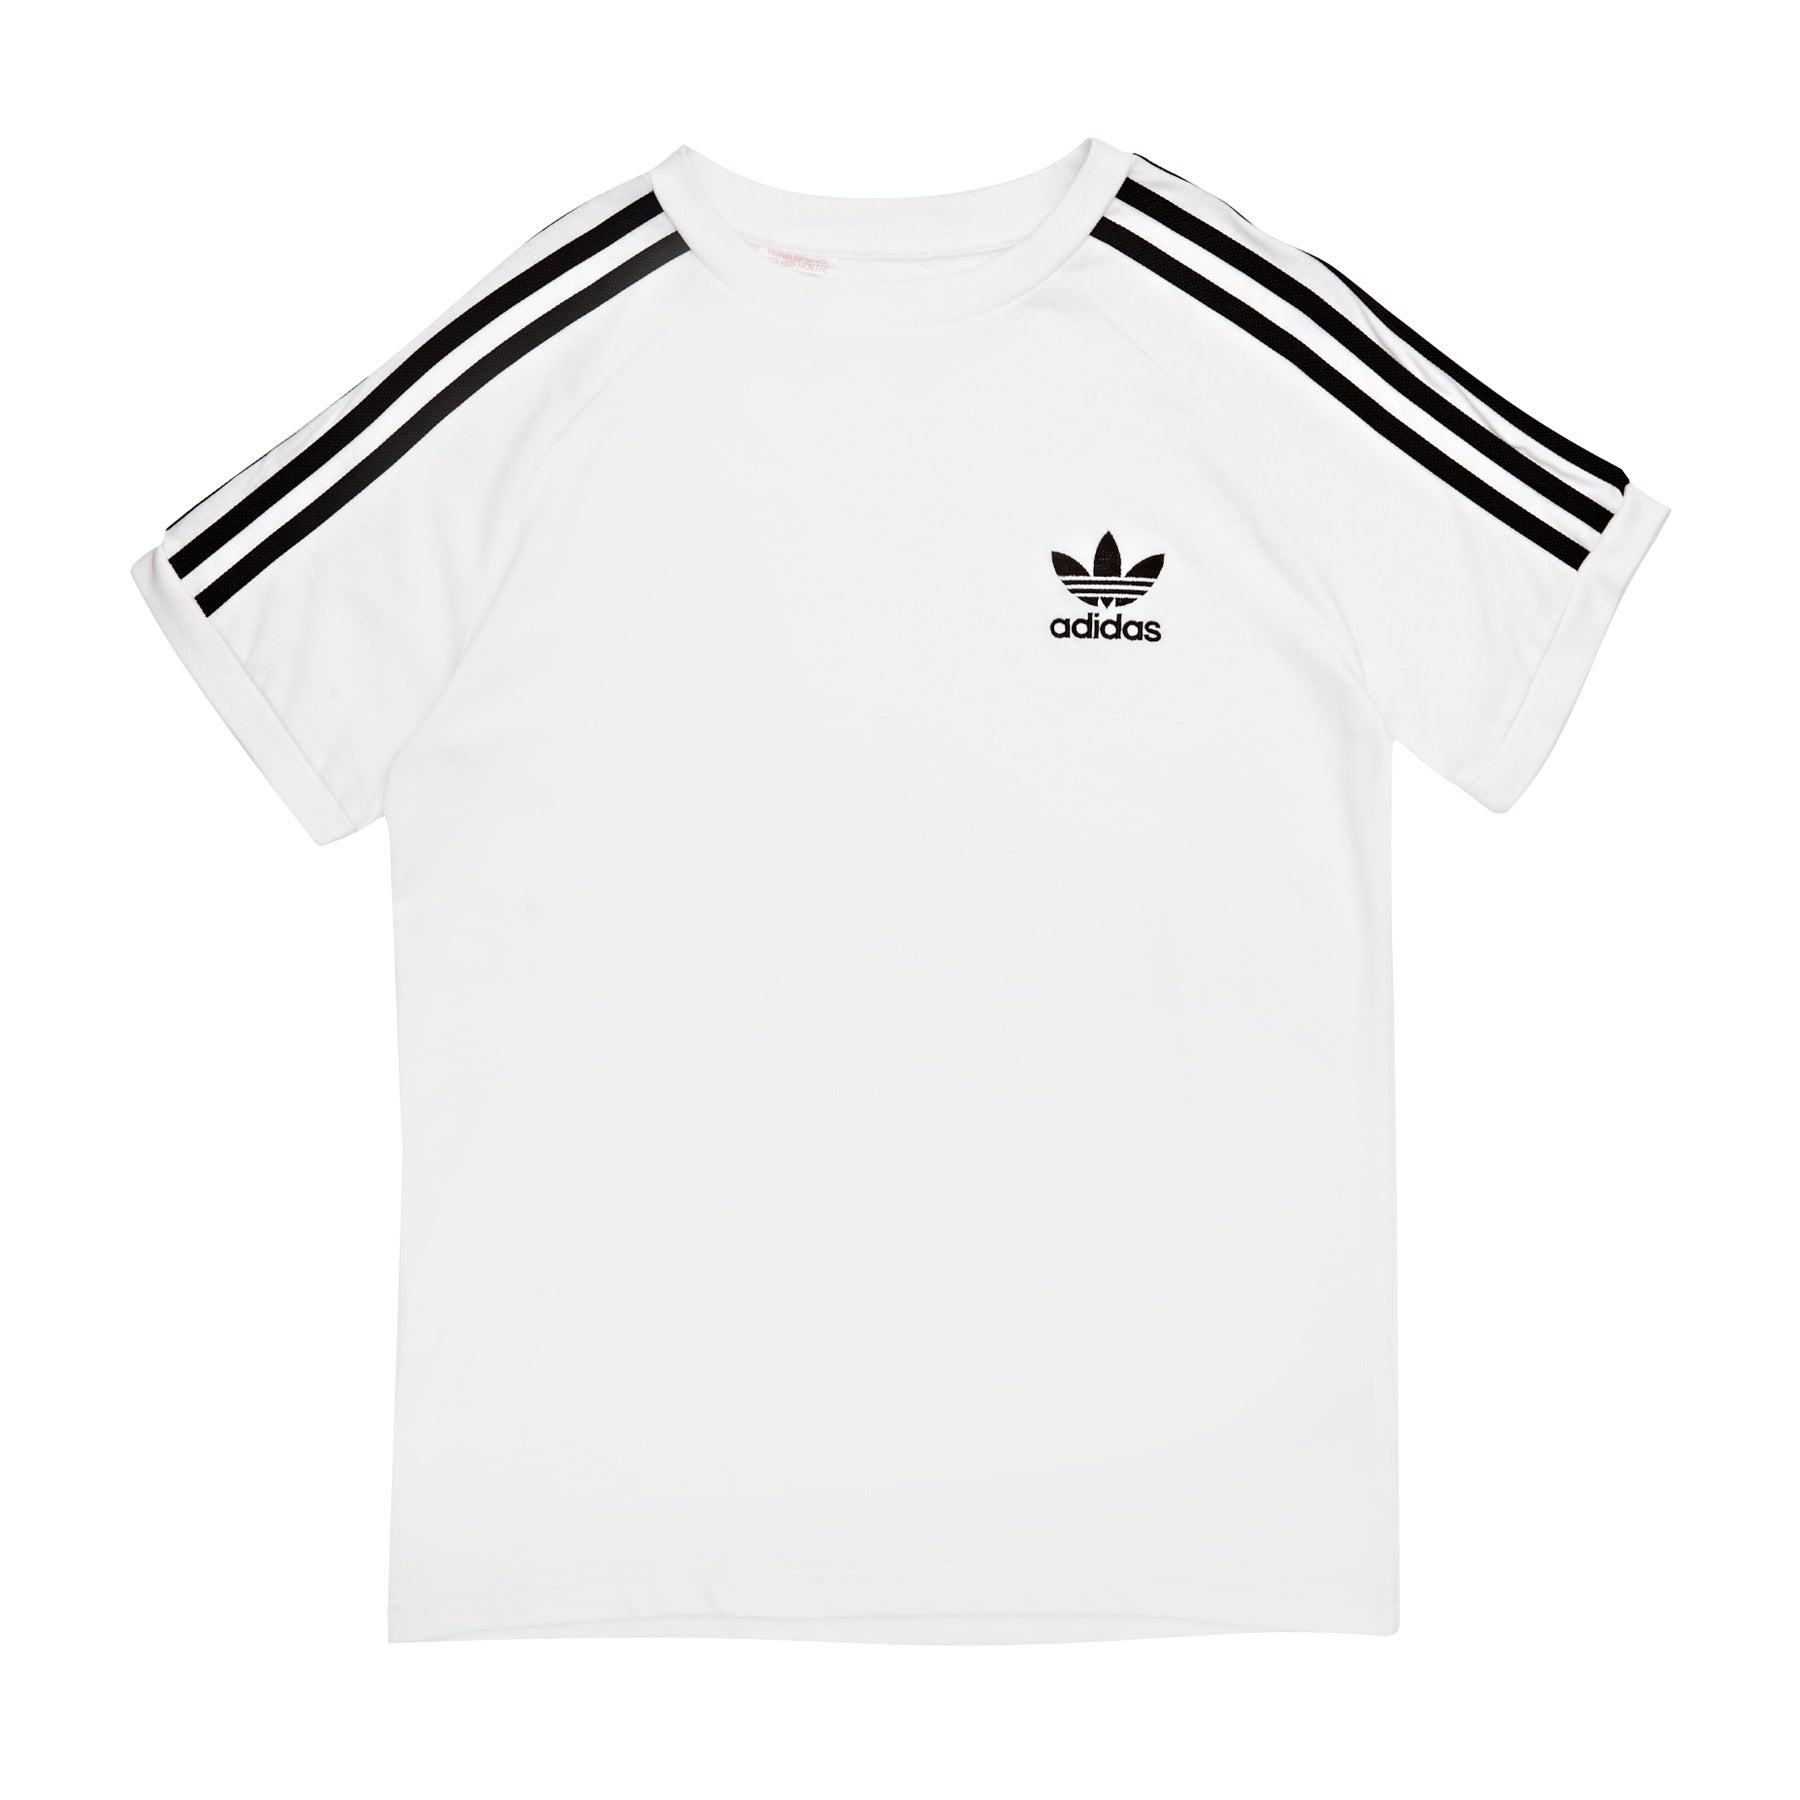 Adidas Originals California Boys Short Sleeve T-Shirt - White Black